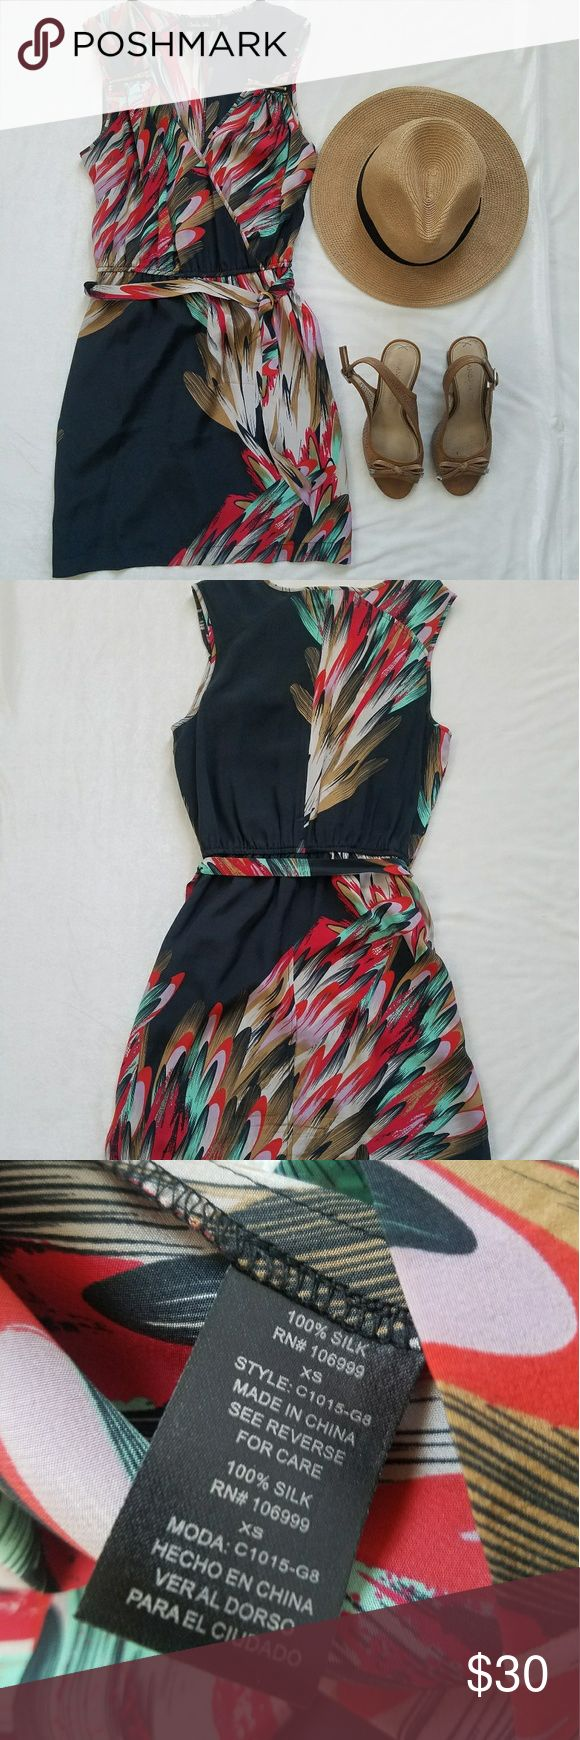 "100% Silk Charlie Jade dress 100% silk dress with colorful feather detailing gives this piece a fun and free spirit feel! Show your inner artist and add this dress to your gallery! Lightly worn with no signs of damage. Approximant measurements when flat:16"" chest 11 1/2"" waist 32"" long Charlie Jade Dresses Mini"